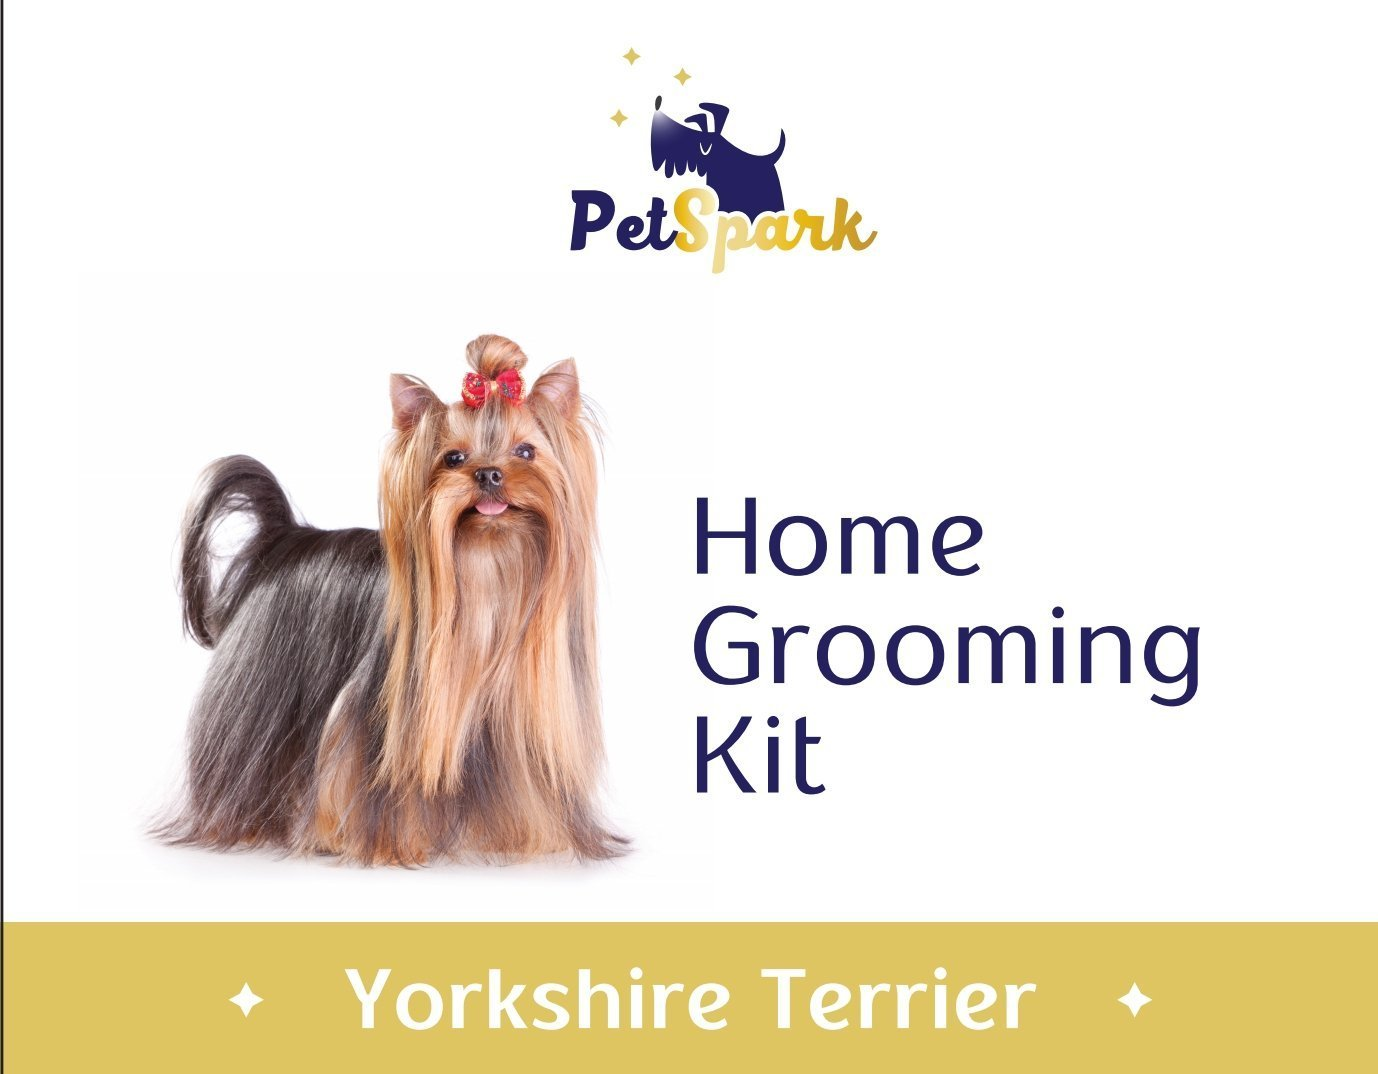 Petspark Home Grooming Kit For Yorkshire Terrier Special Design Set